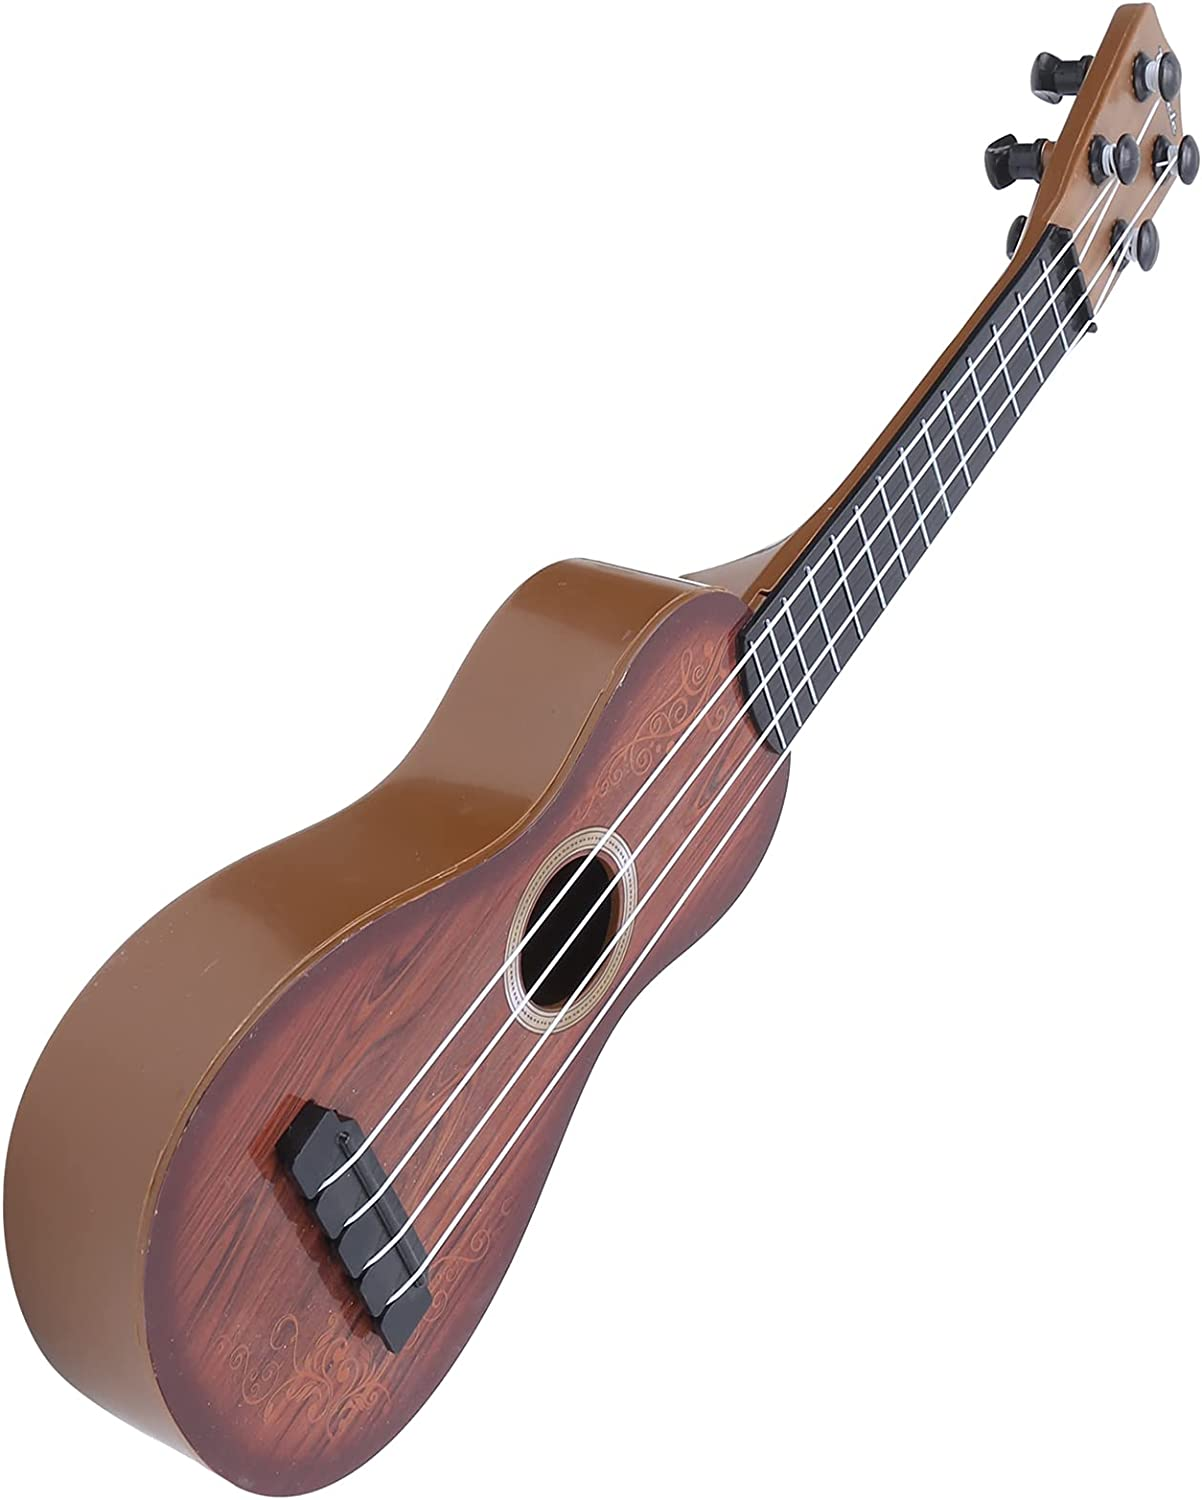 Toddler Gifts Musical Instruments Toy Ukulel Kids Durable Plastic Recommendation